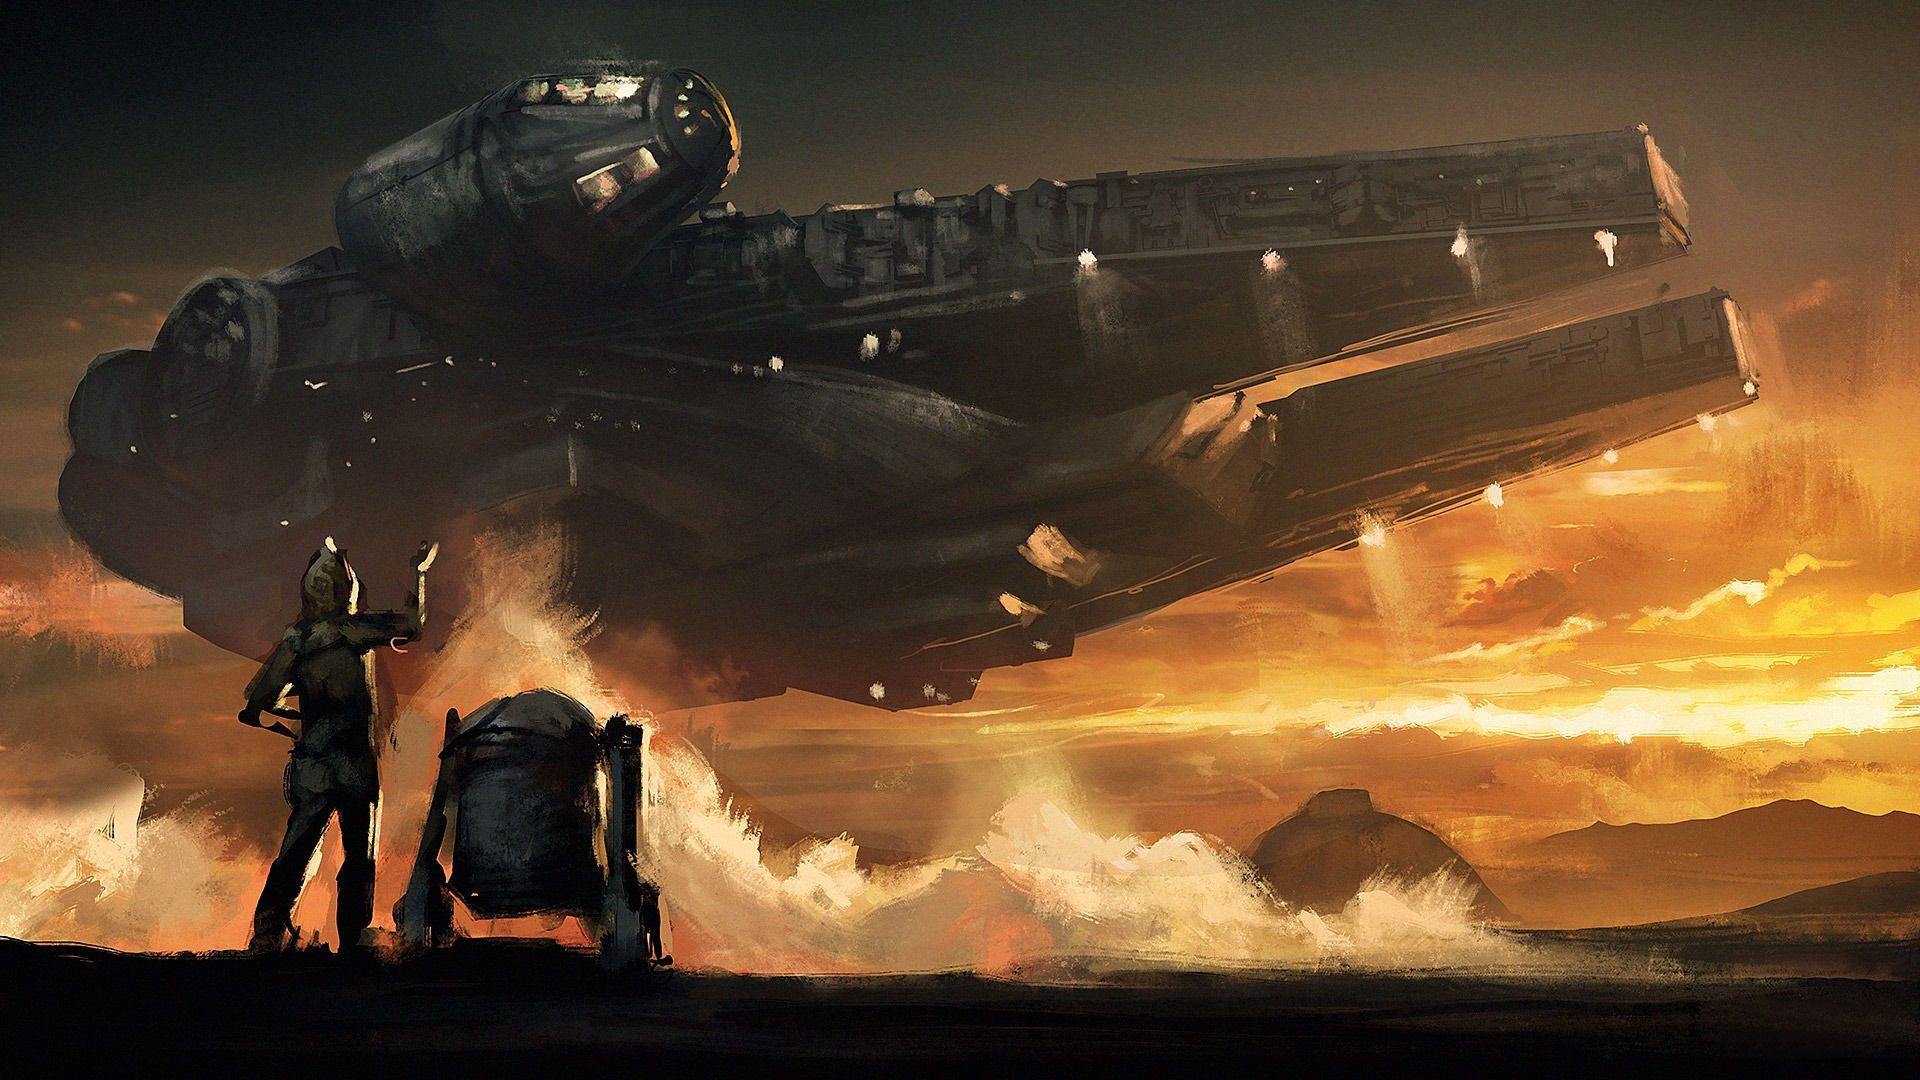 Star Wars Concept Art Wallpaper 67 Images Star Wars Wallpaper